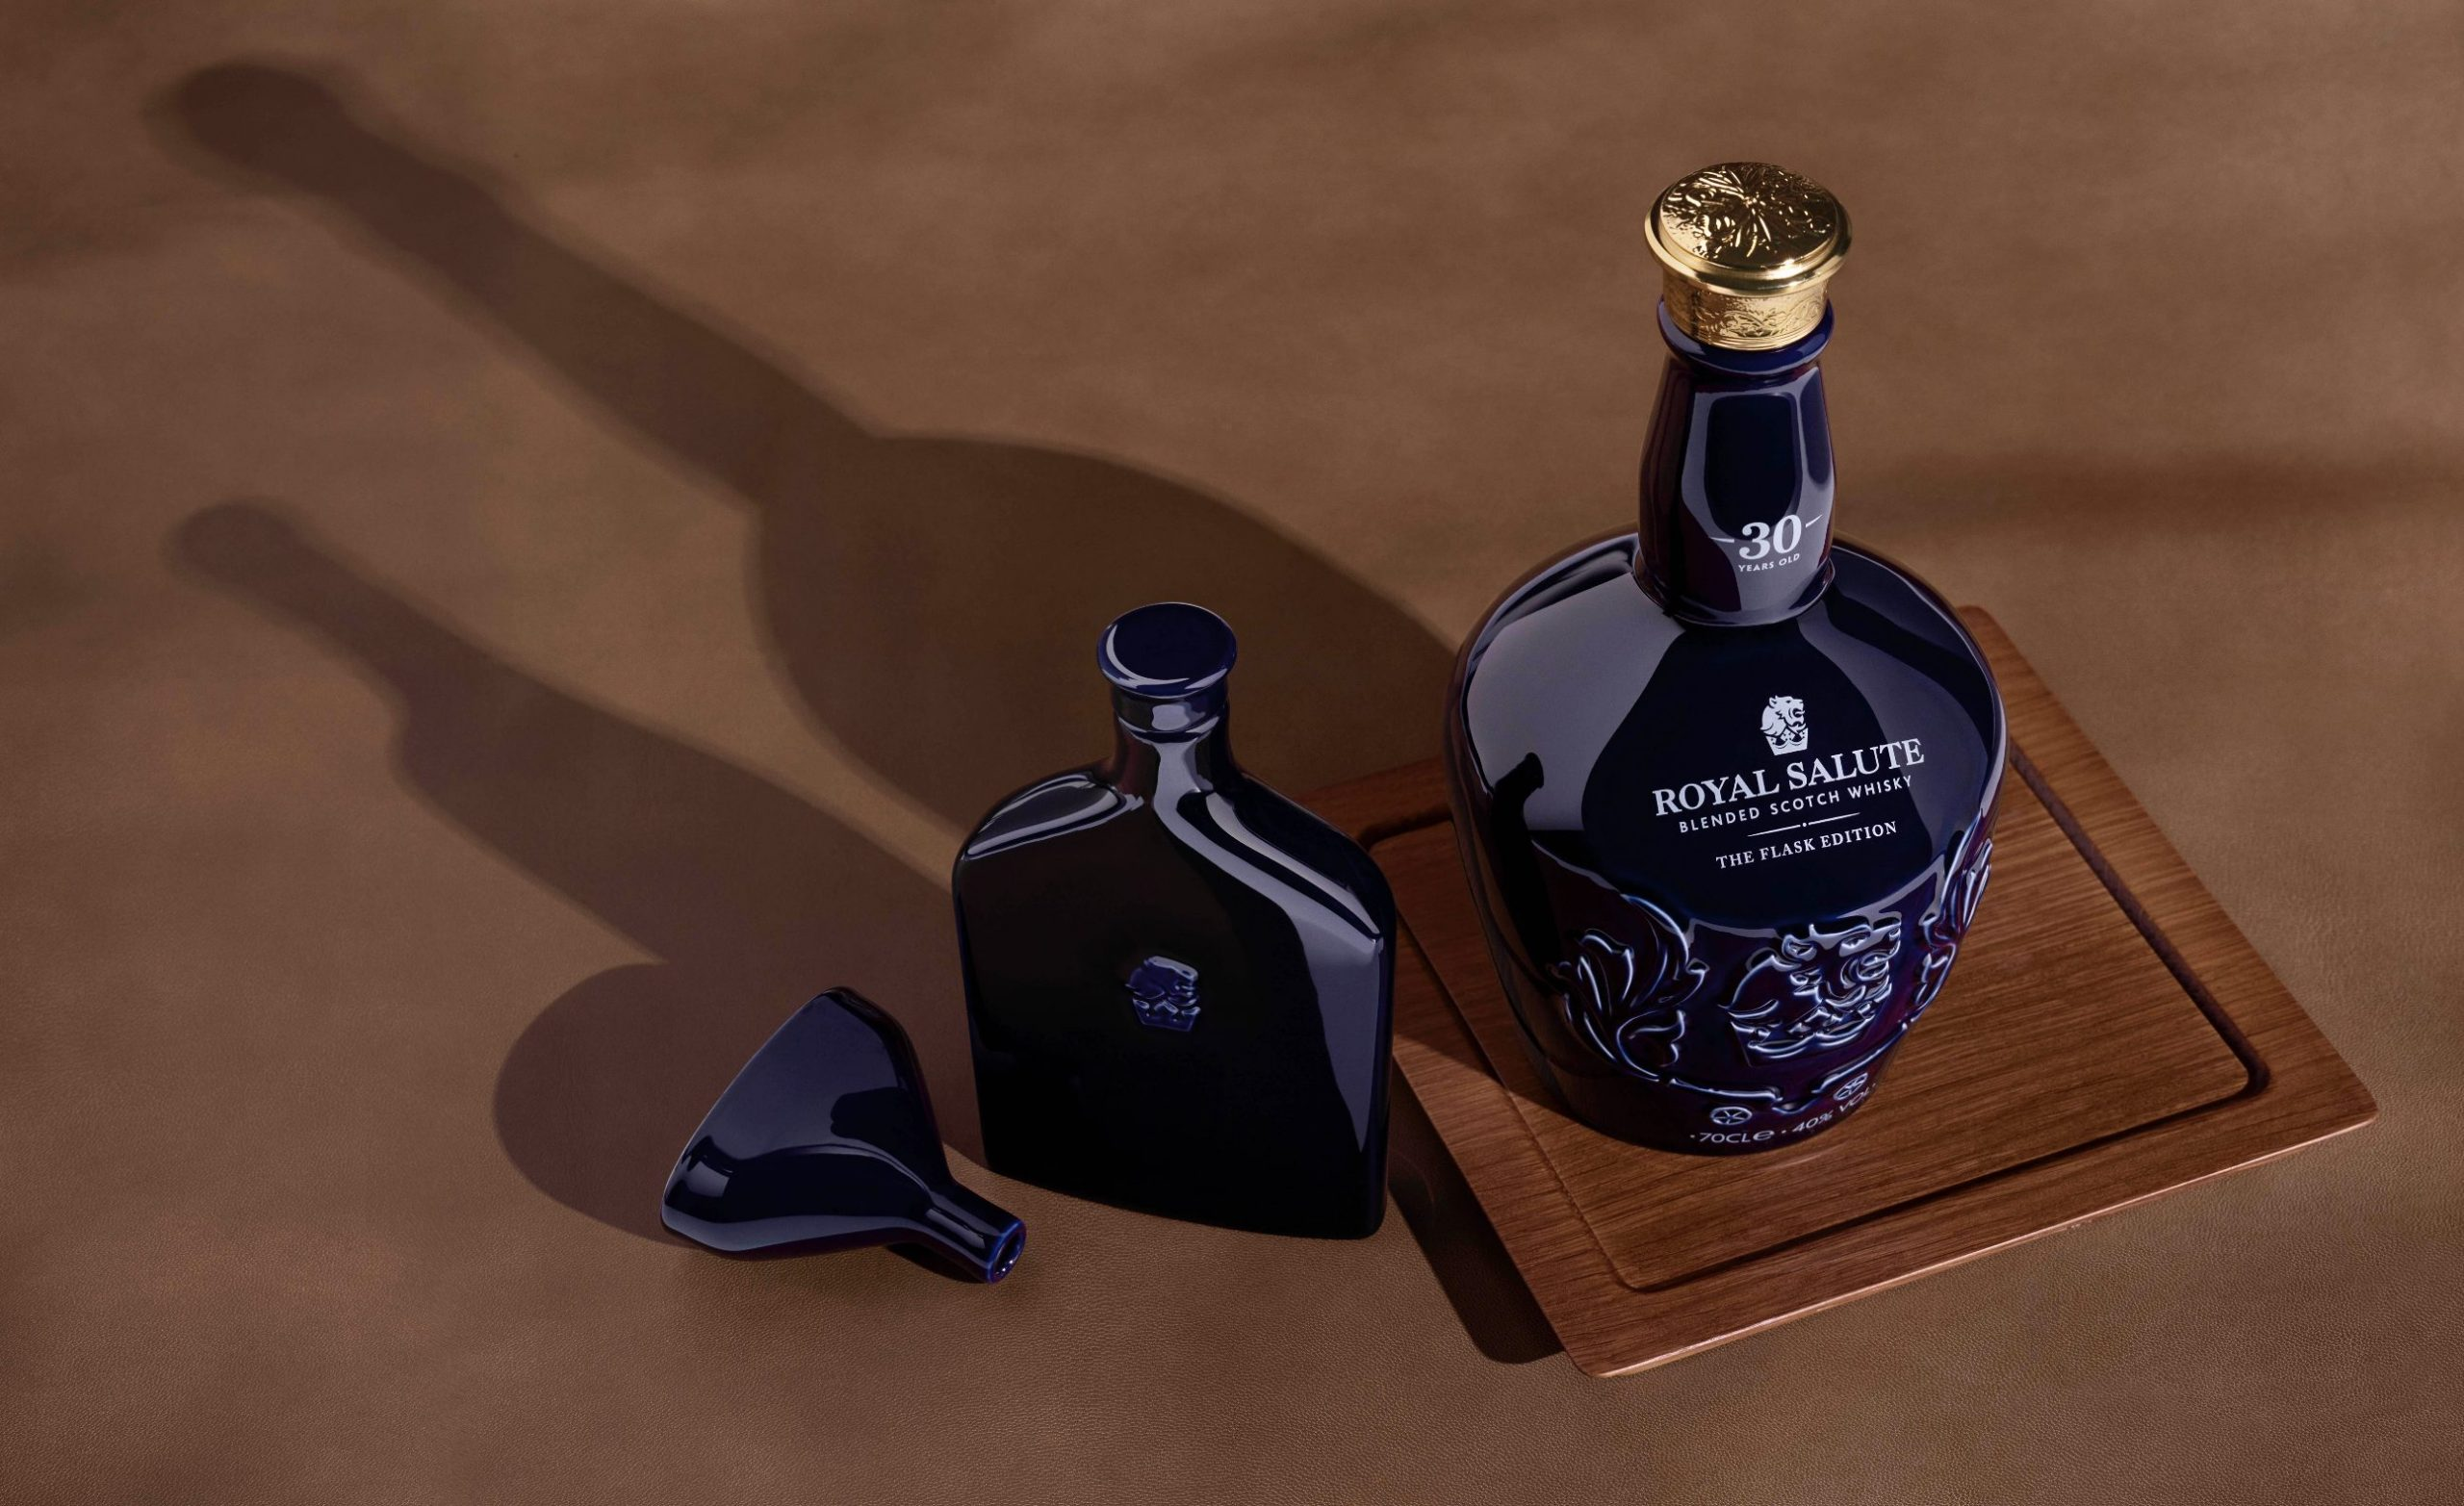 Royal Salute Blended Scotch Whisky The Flask Edition